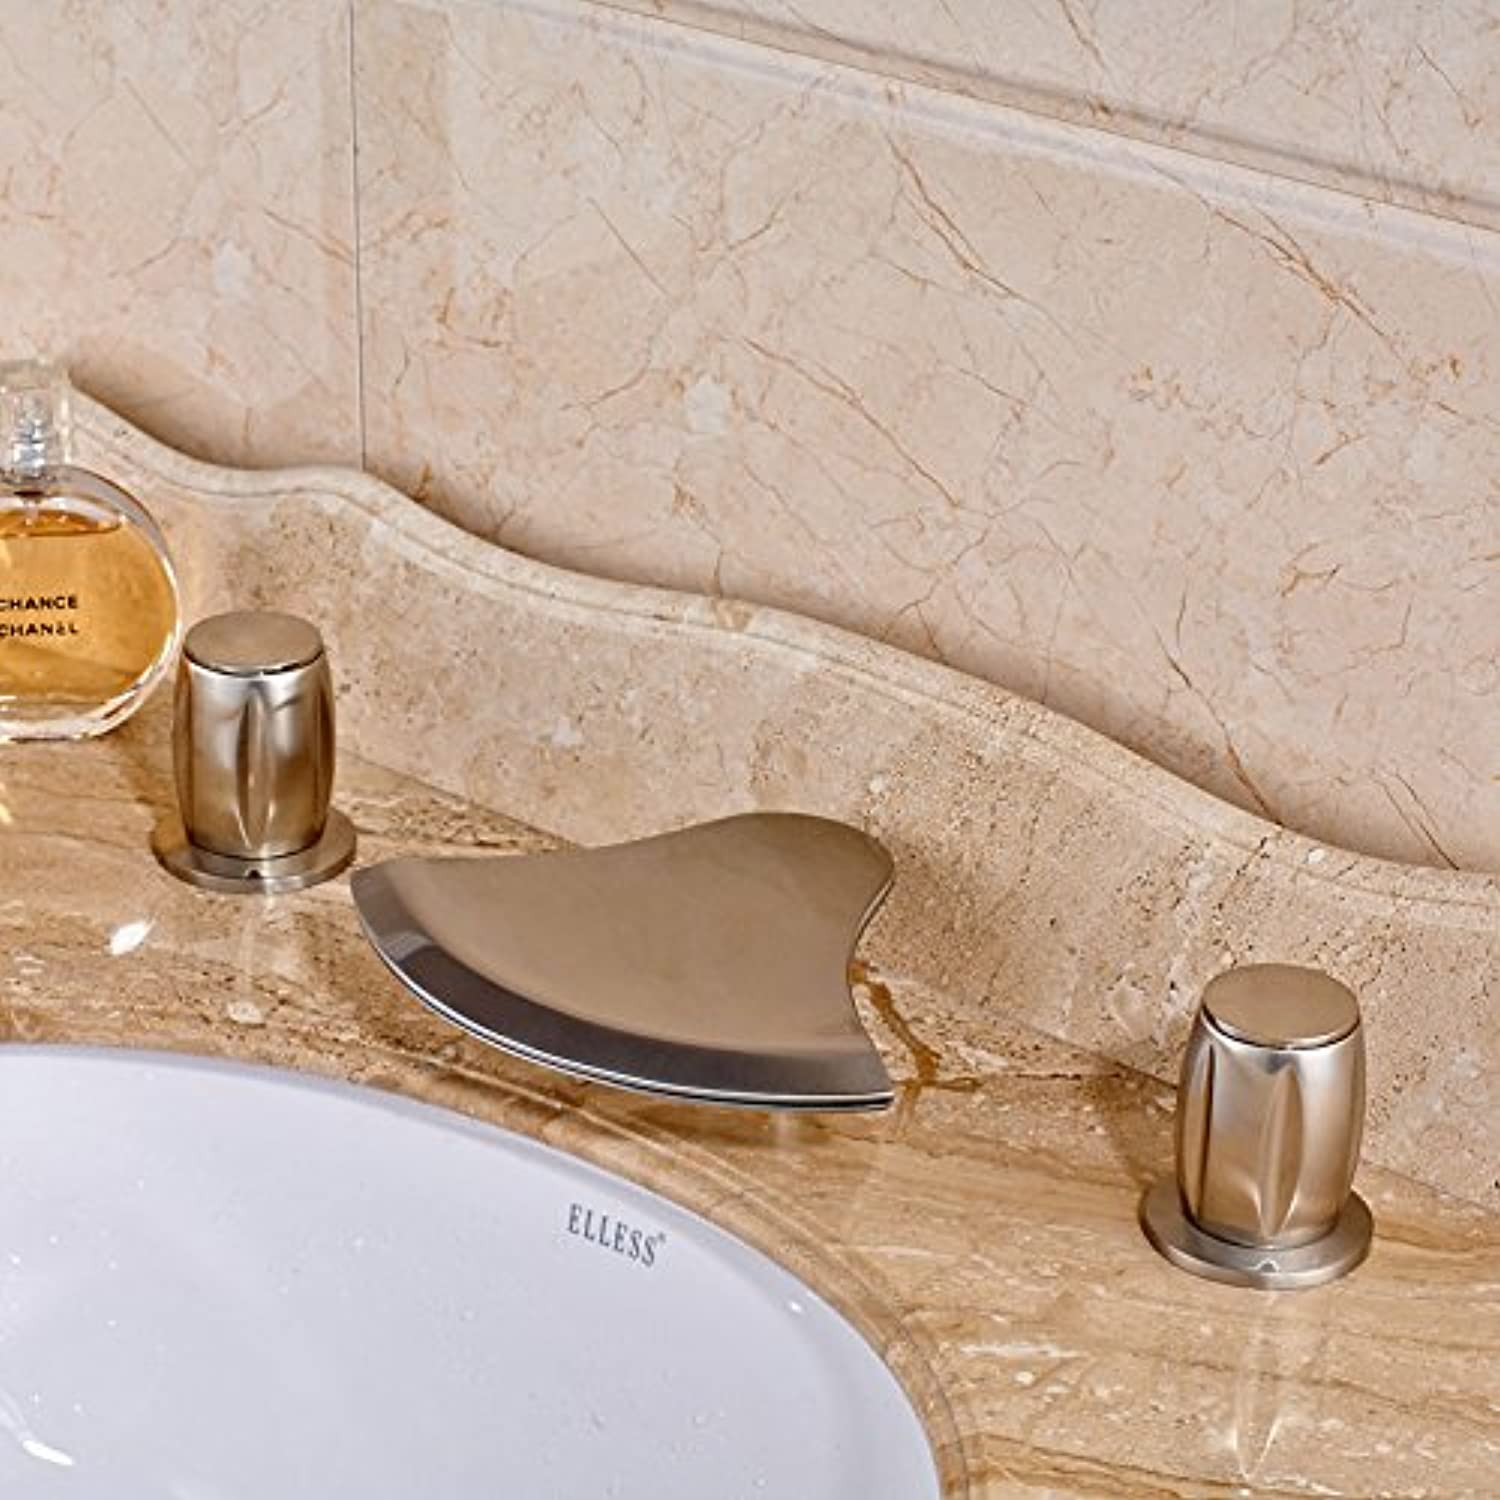 Maifeini The Bathroom Has A Polished Nickel Basin Mixer With Dual Three Holes In The Mounting Of The Deck